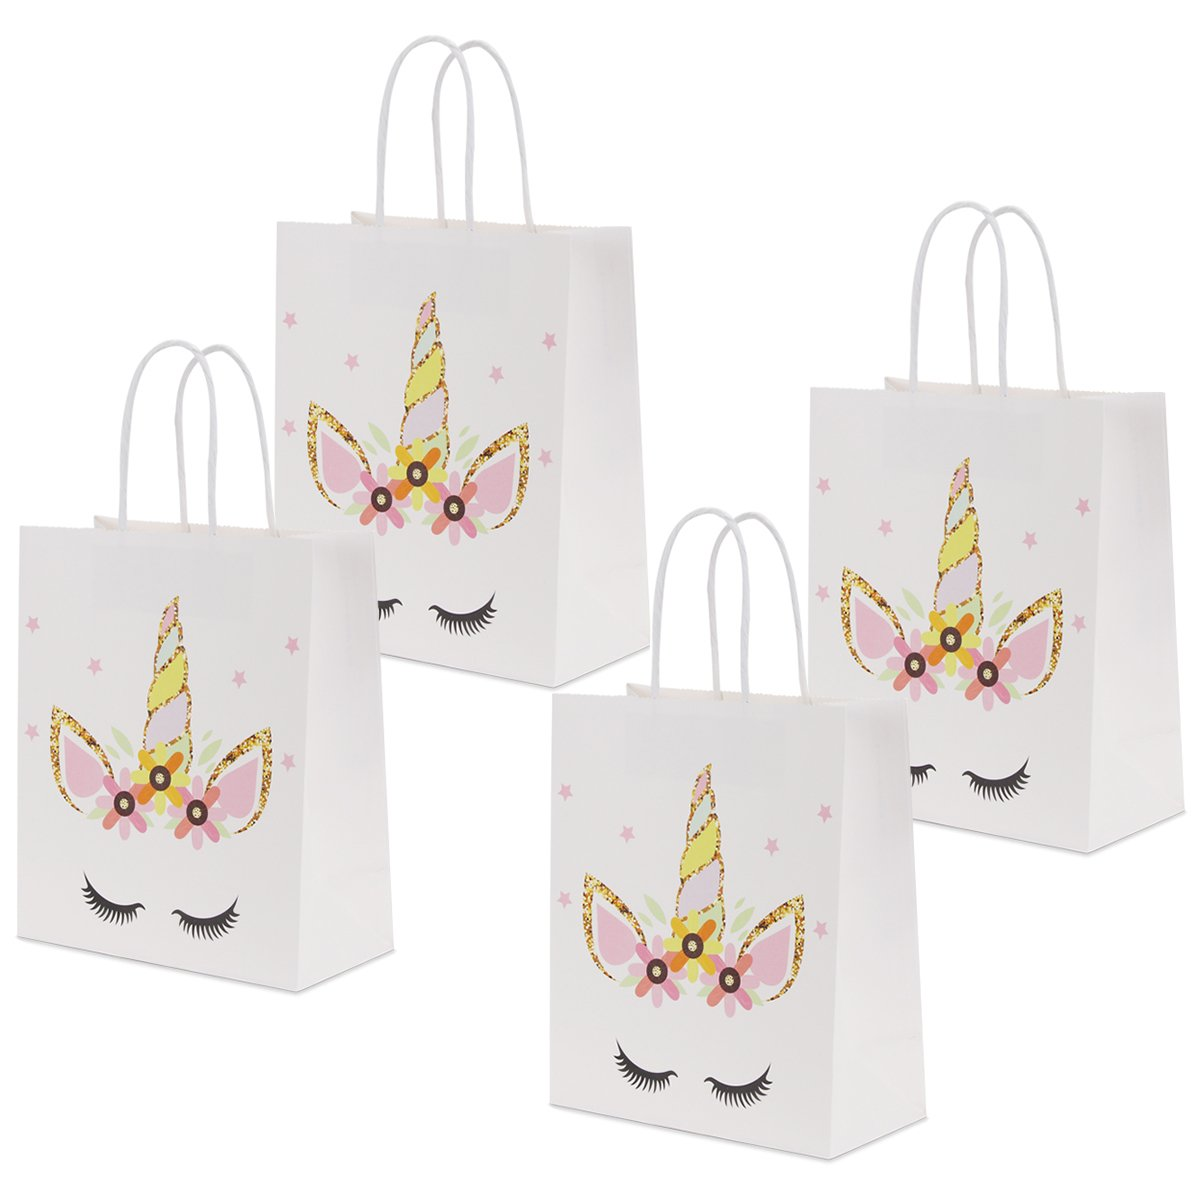 RecooTic Unicorn Party Bags with Handles Gift Bags for Kids Party Supplies Pack of 12